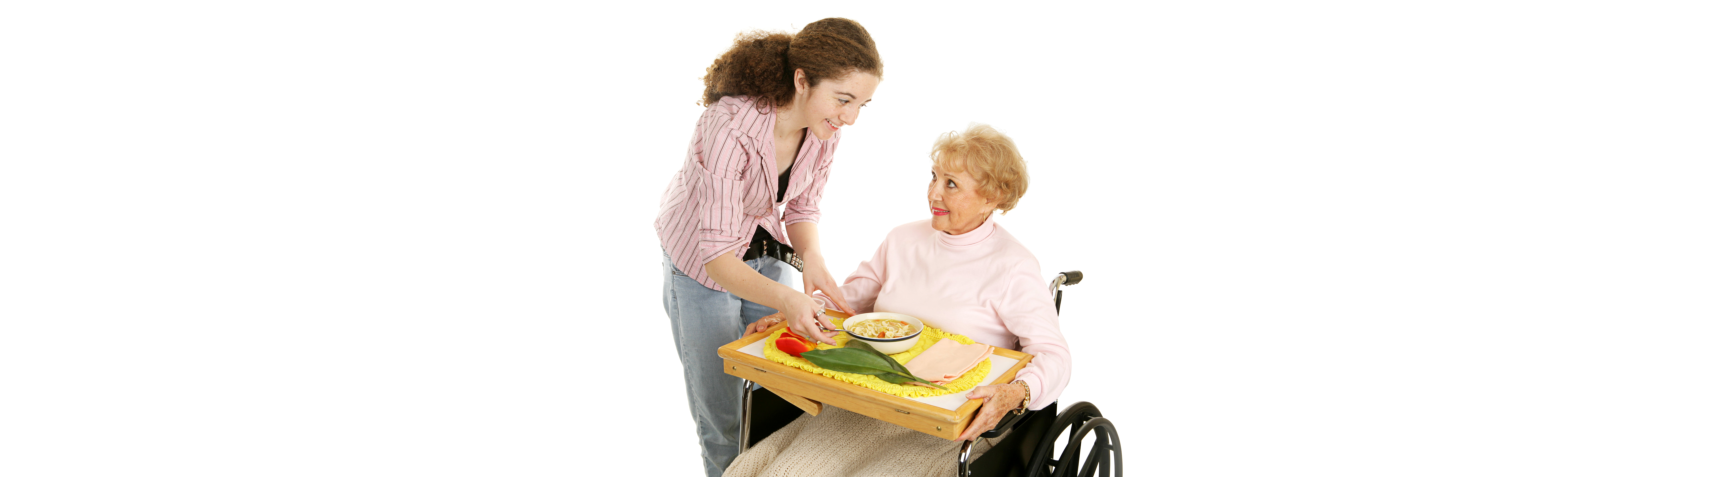 caregiver serving foods to an old woman